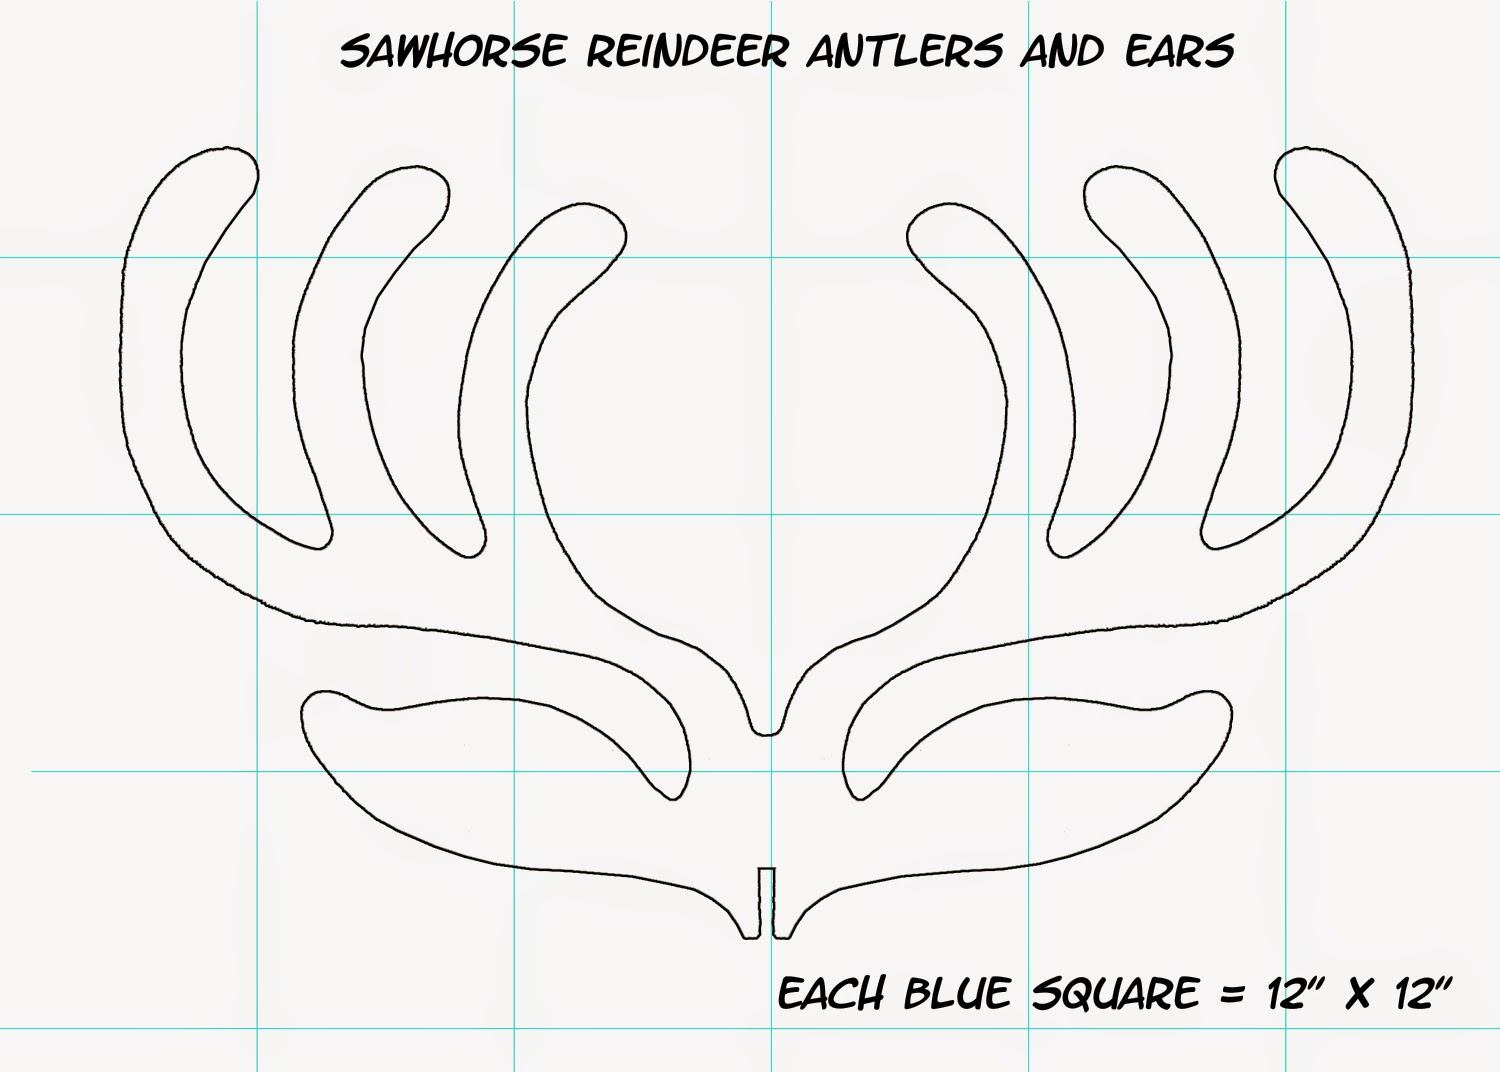 Dave lowe design the blog sawhorse reindeer how to for Template for reindeer antlers